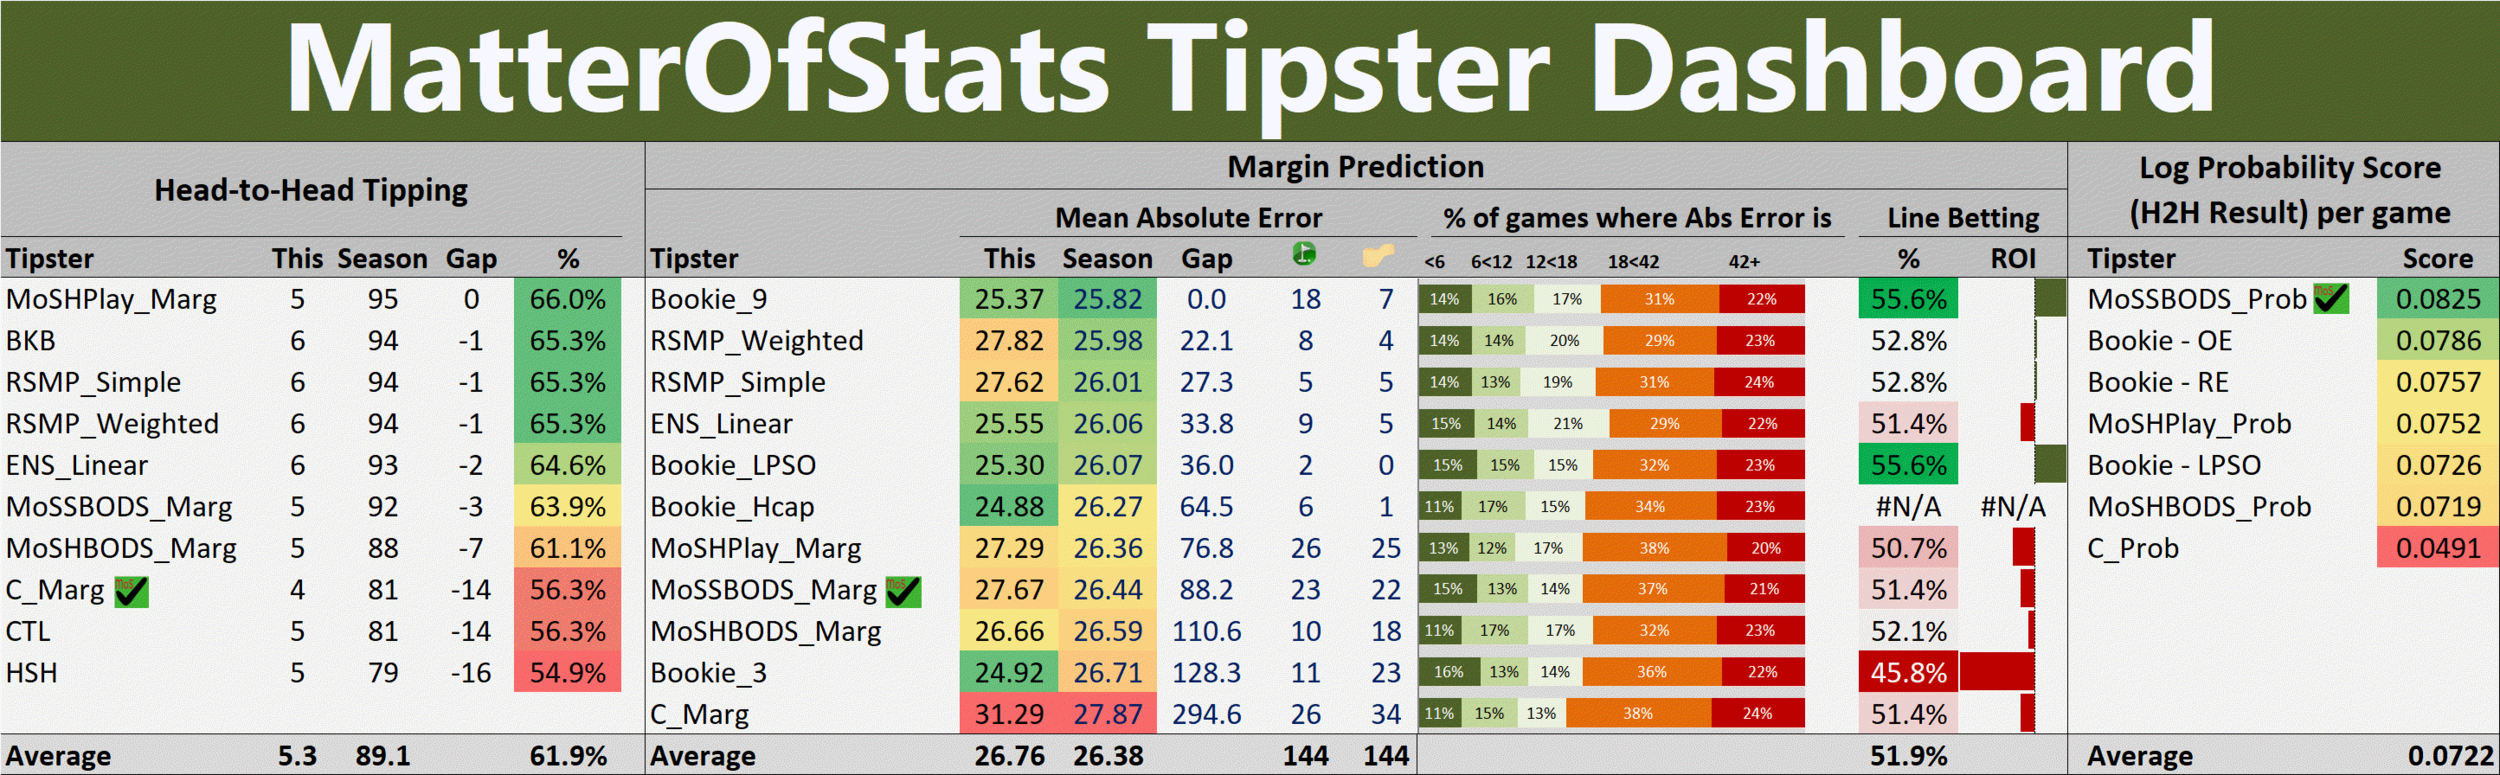 R17 - Tipster Dashboard.png